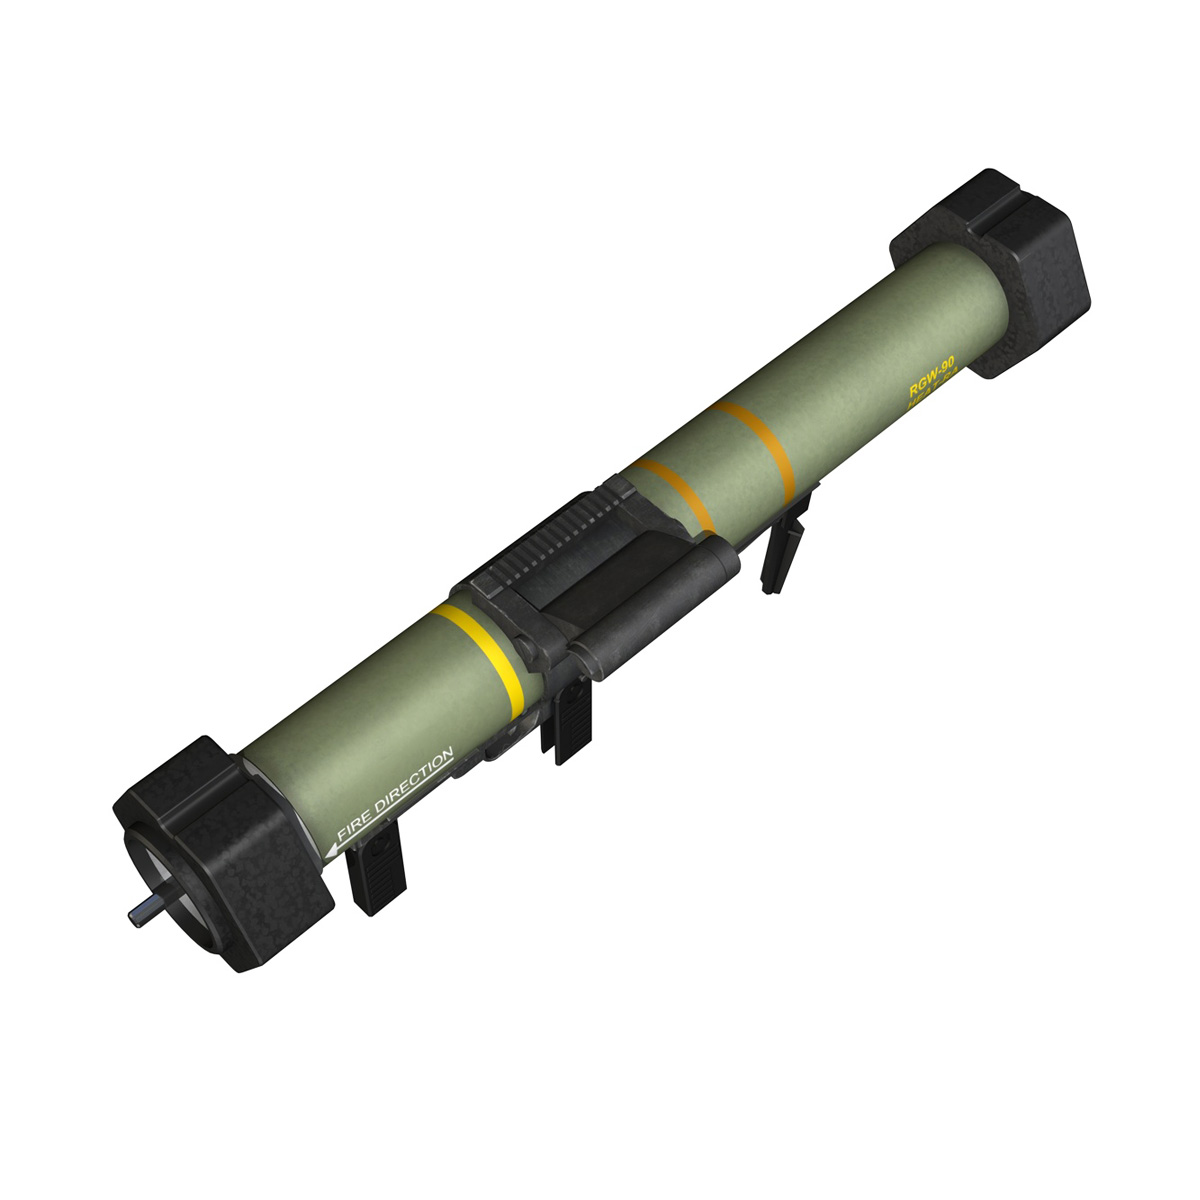 anti-armor launcher matador 3d model 3ds fbx c4d lwo obj 197075